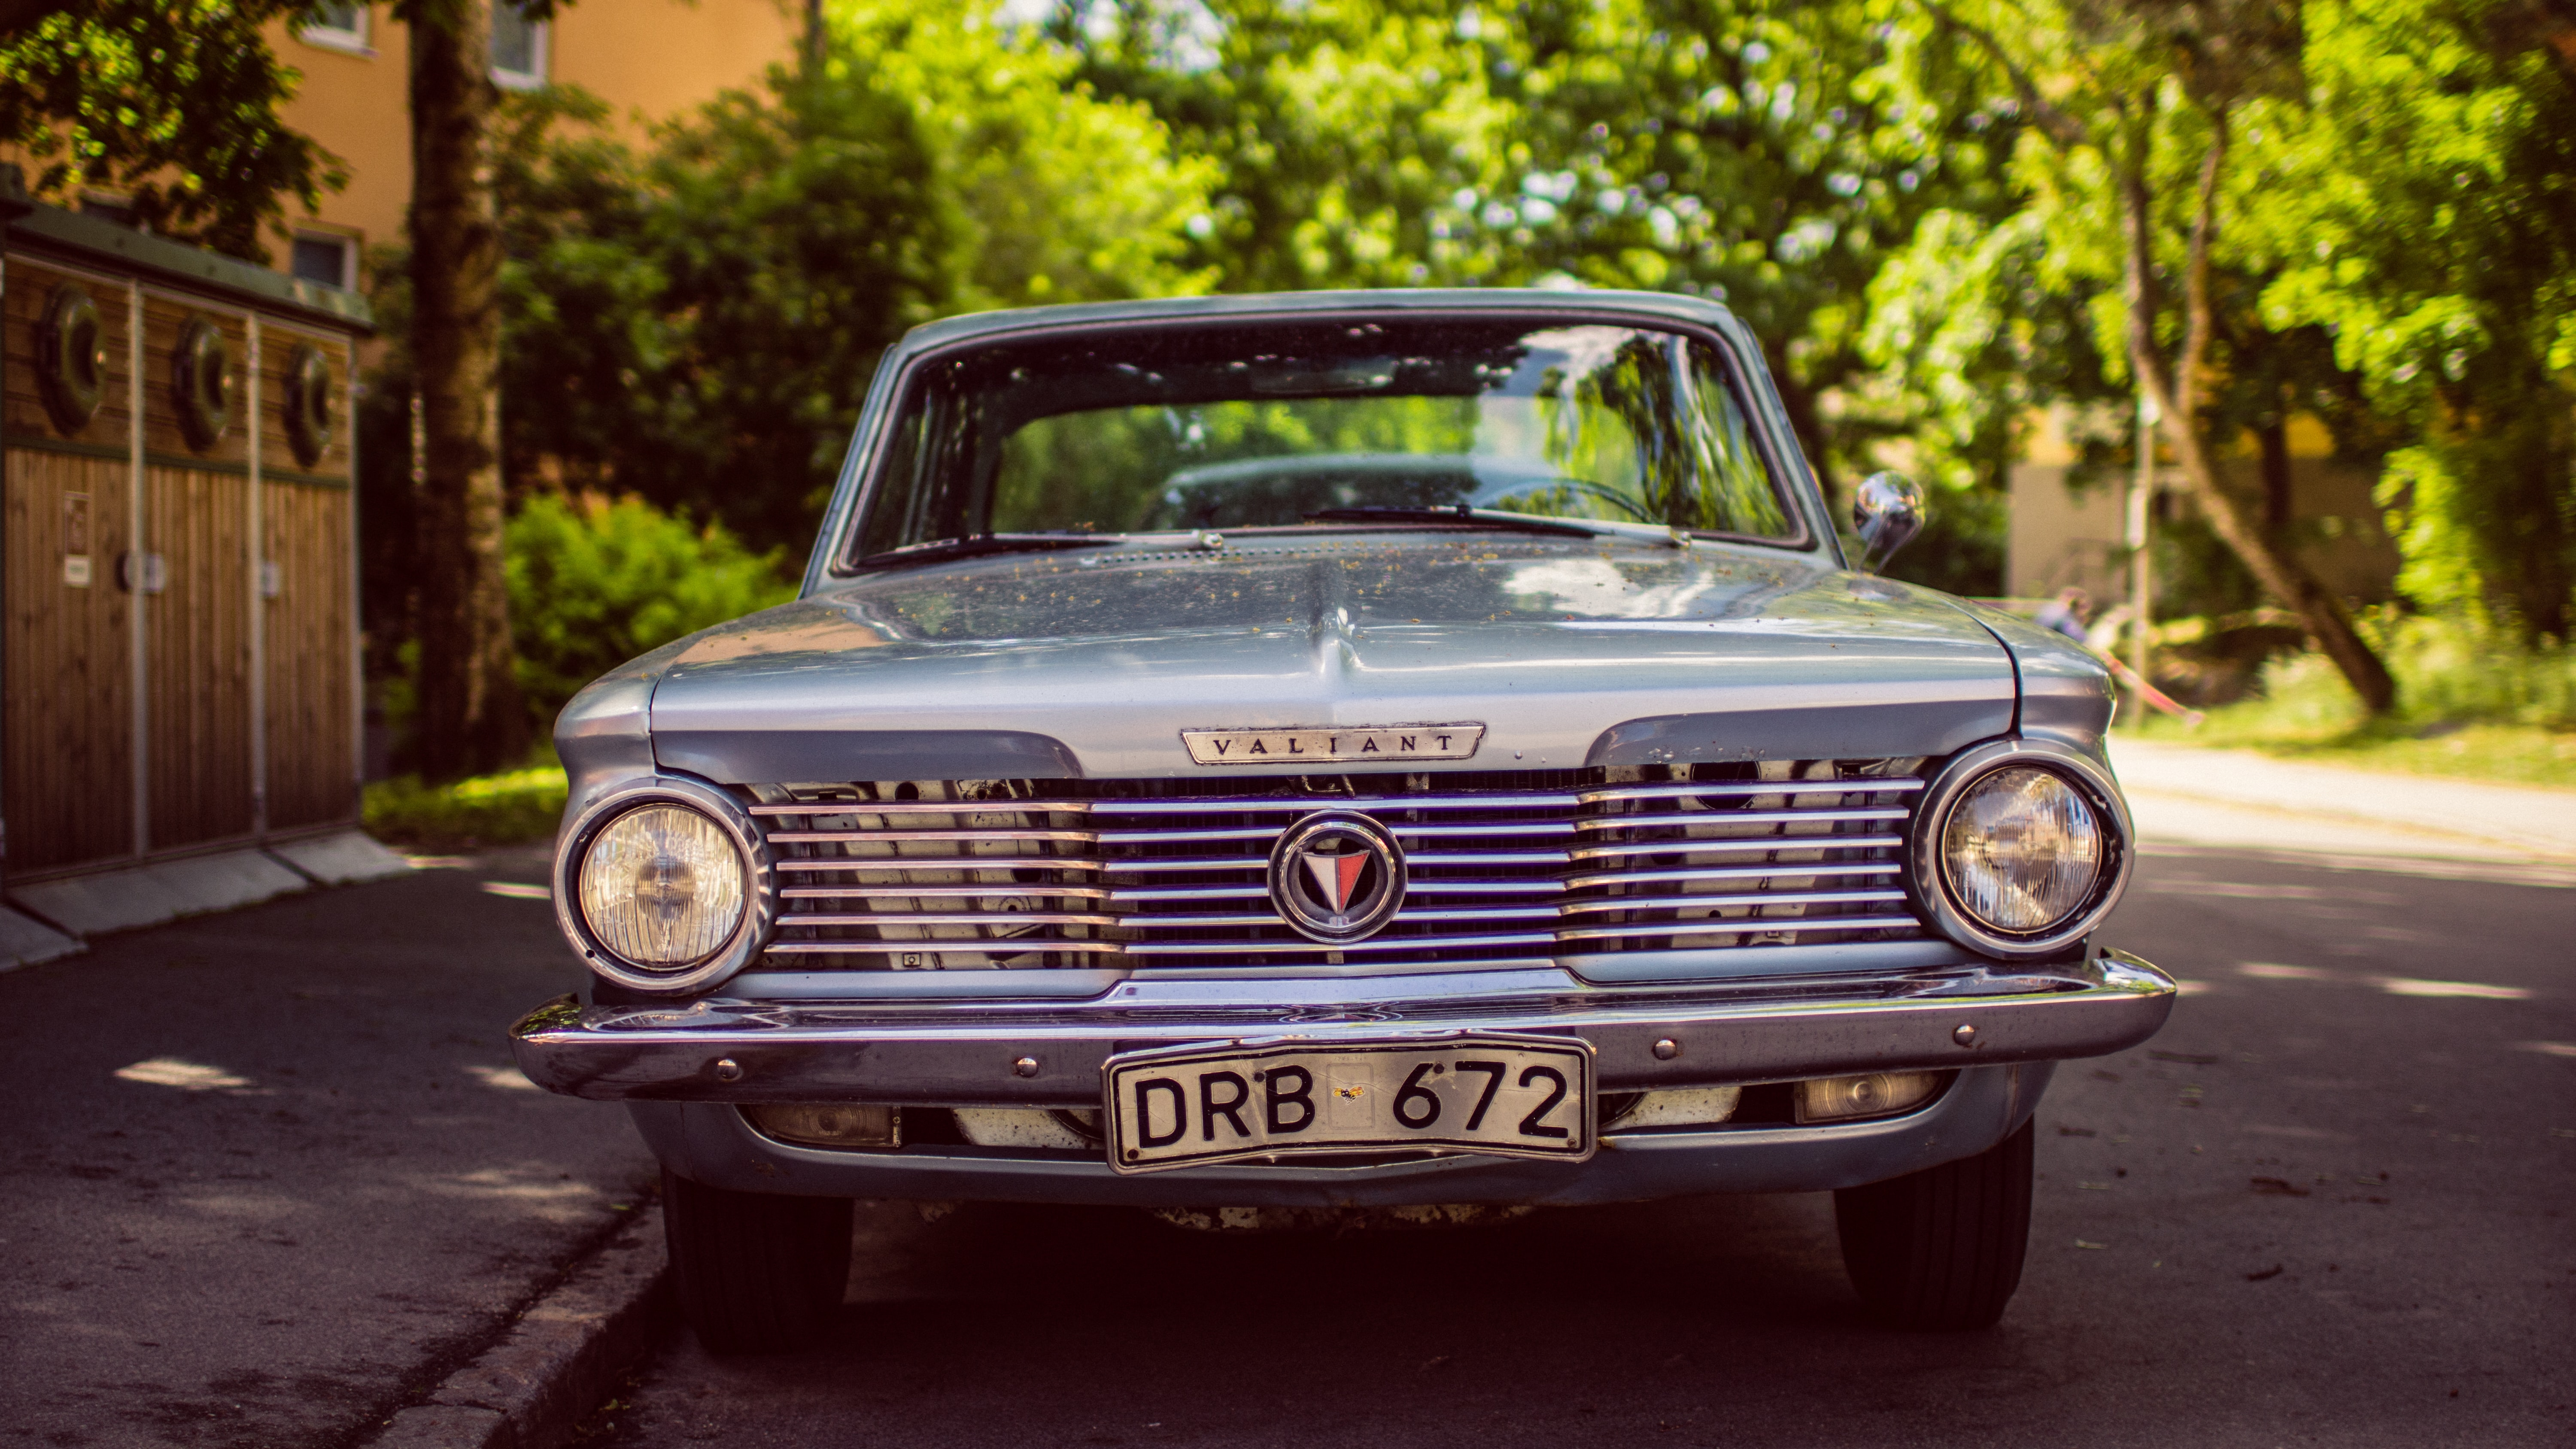 Vintage, blue Valiant with shiny silver grille parked on the sidewalk in front of trees